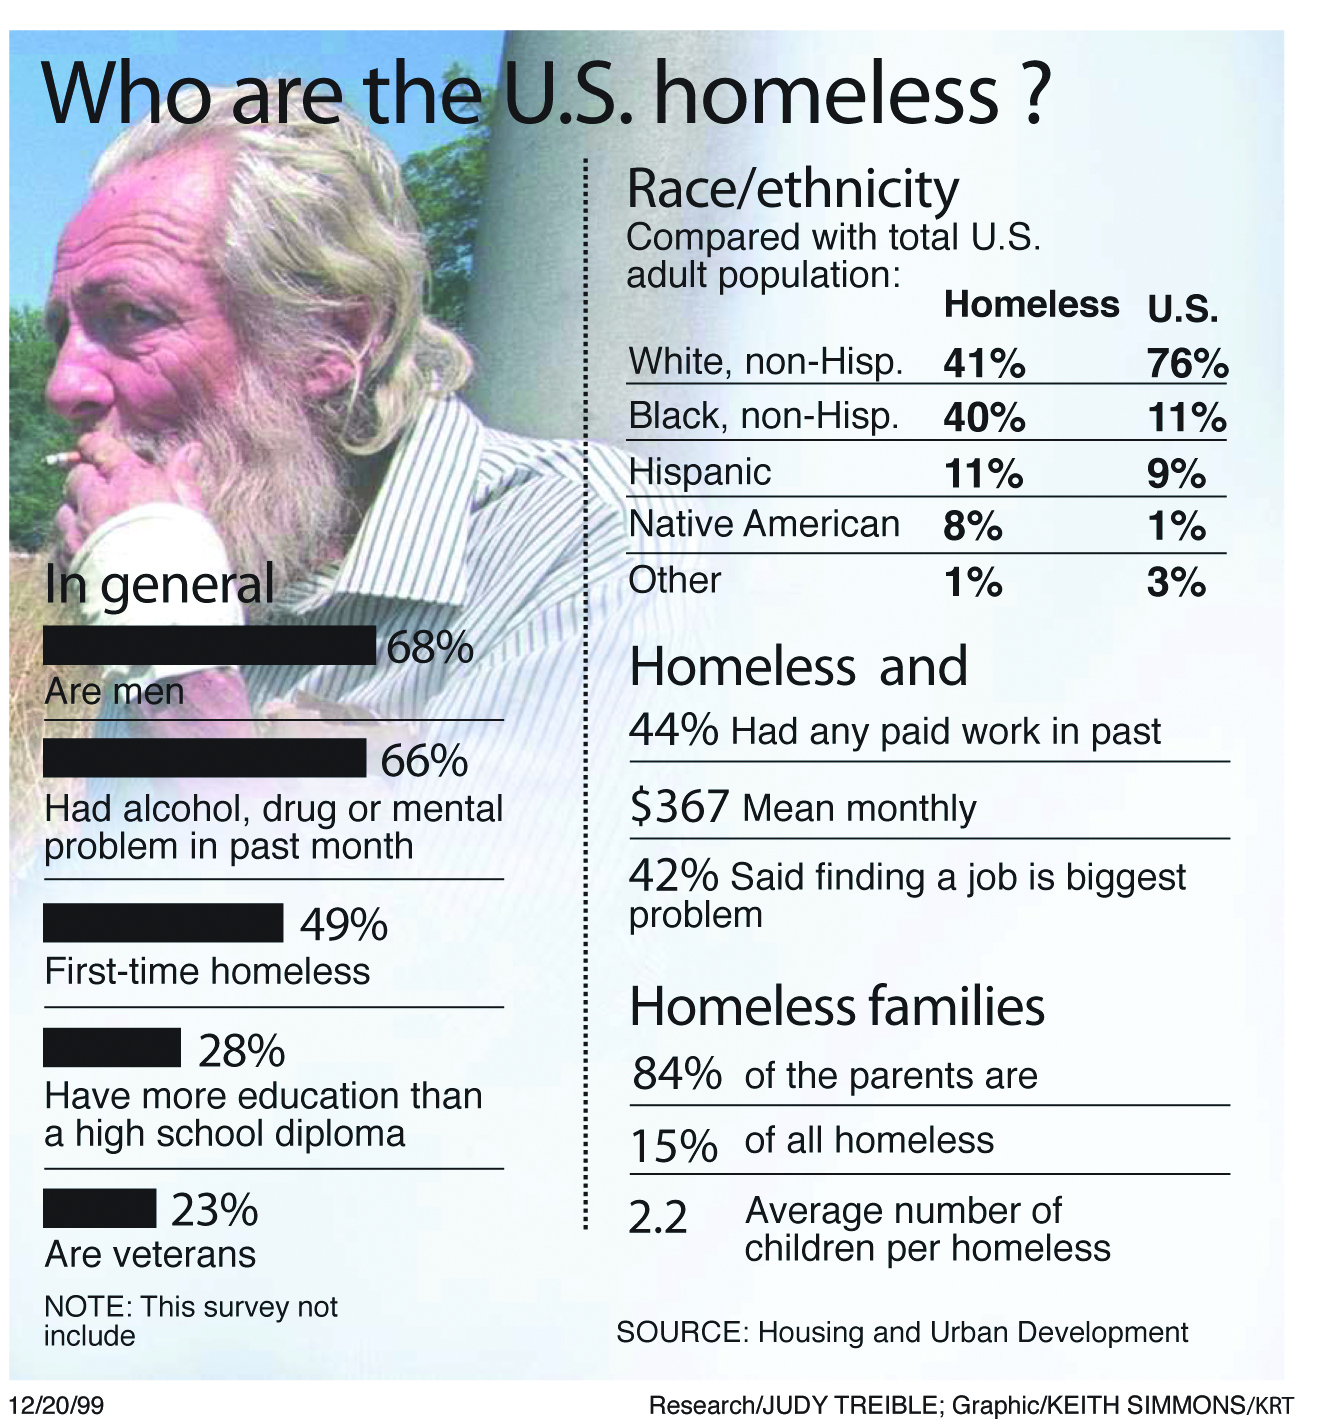 Homeless deserve more than just a casual glance